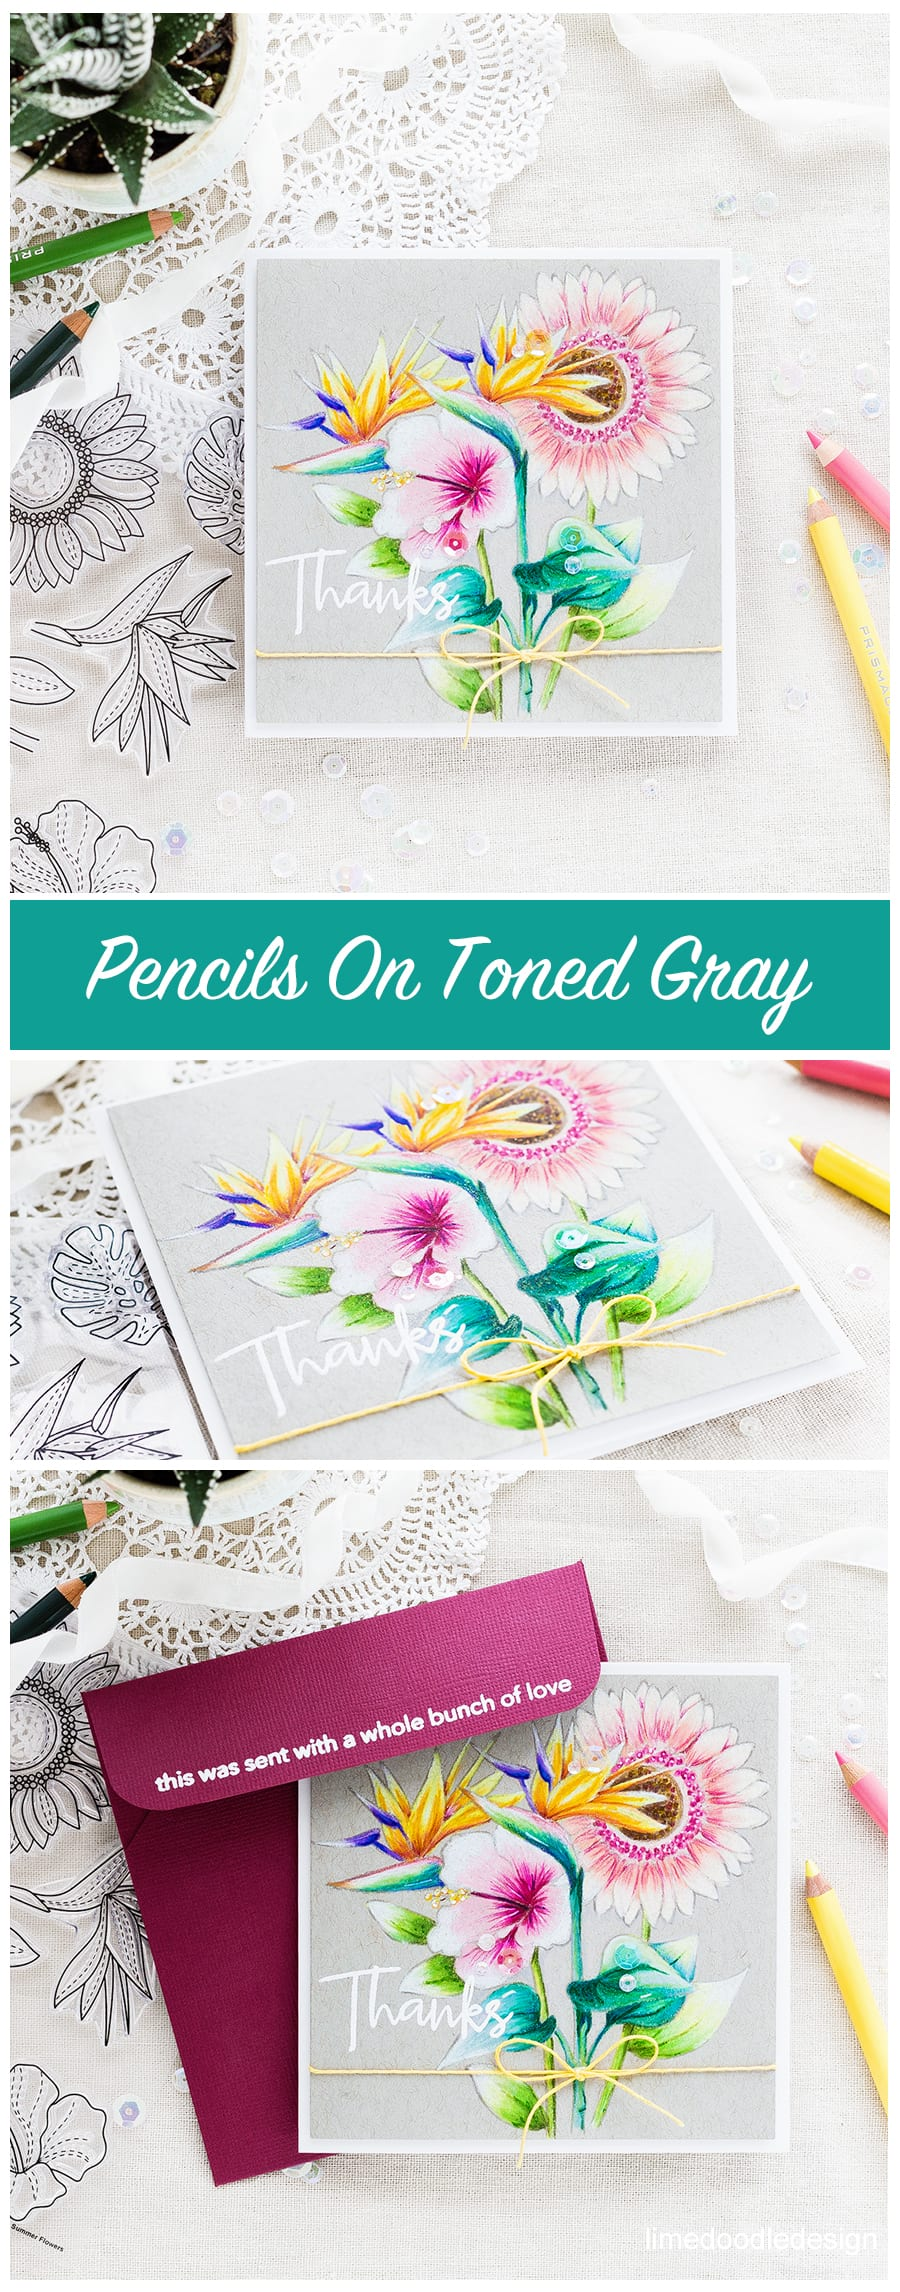 Pencil colouring Summer Flowers by Debby Hughes. Find out more about this summer flowers thanks card by clicking on the following link: http://limedoodledesign.com/2017/05/simon-says-stamp-cherished-release-blog-hop-giveaway/